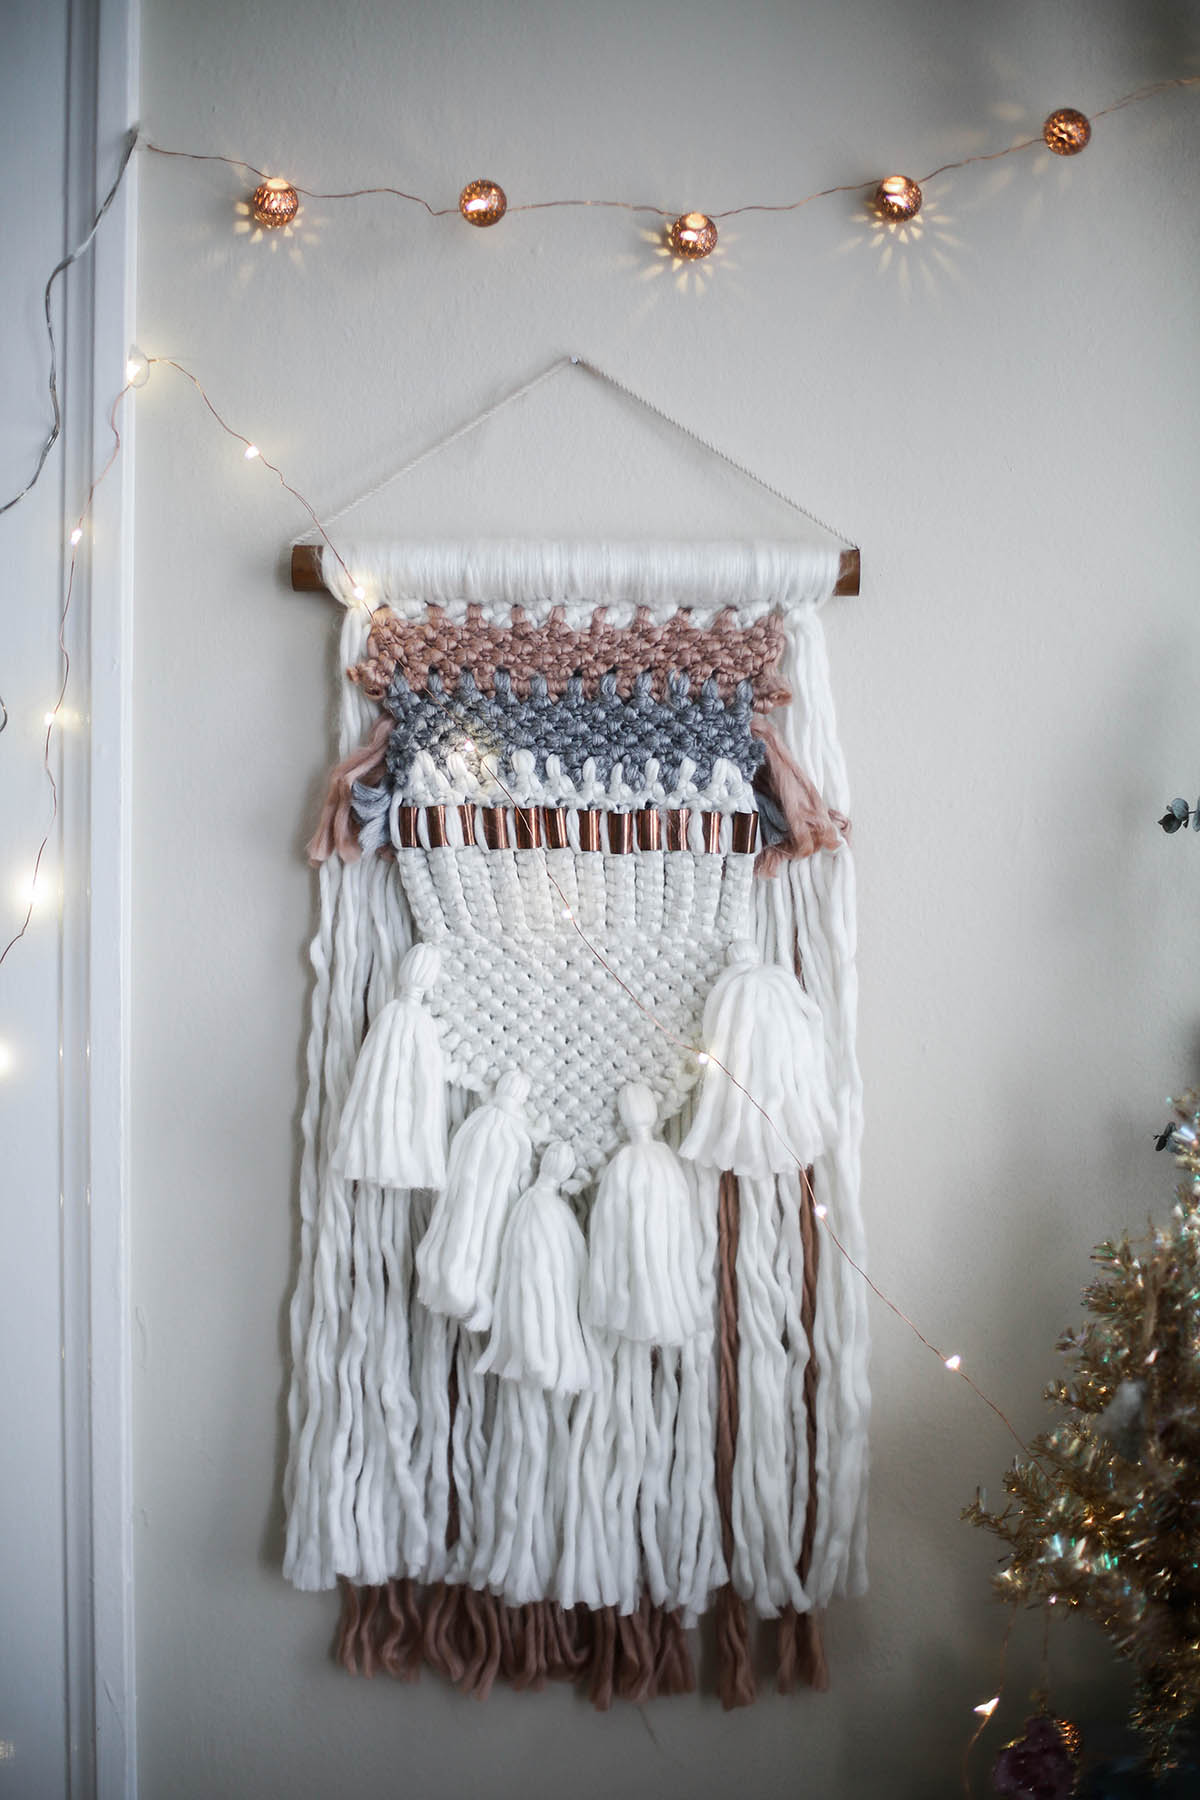 urban outfitters fiber woven wall hanging